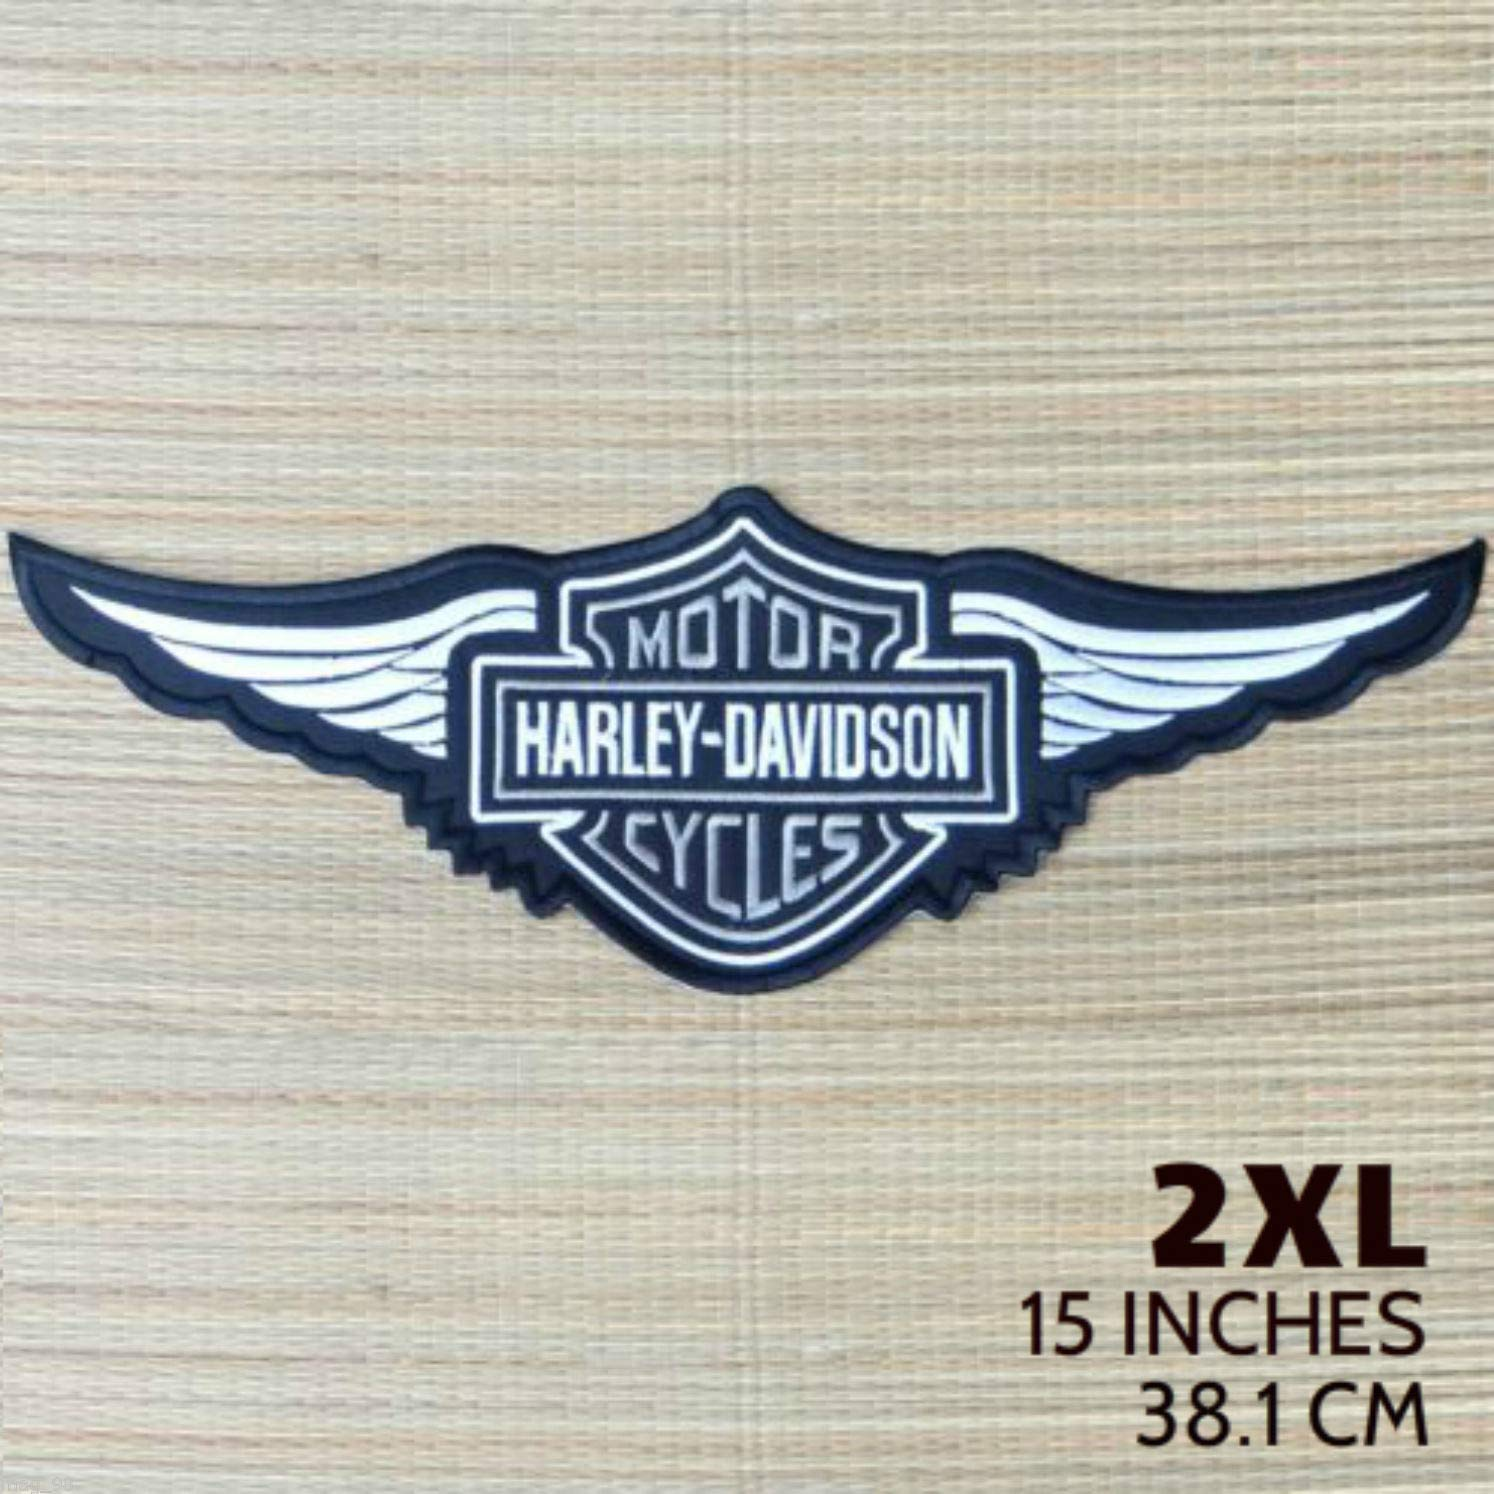 Harley Davidson Silver Logo with Wings Sew-on Patch (2XL) by Lotus energy